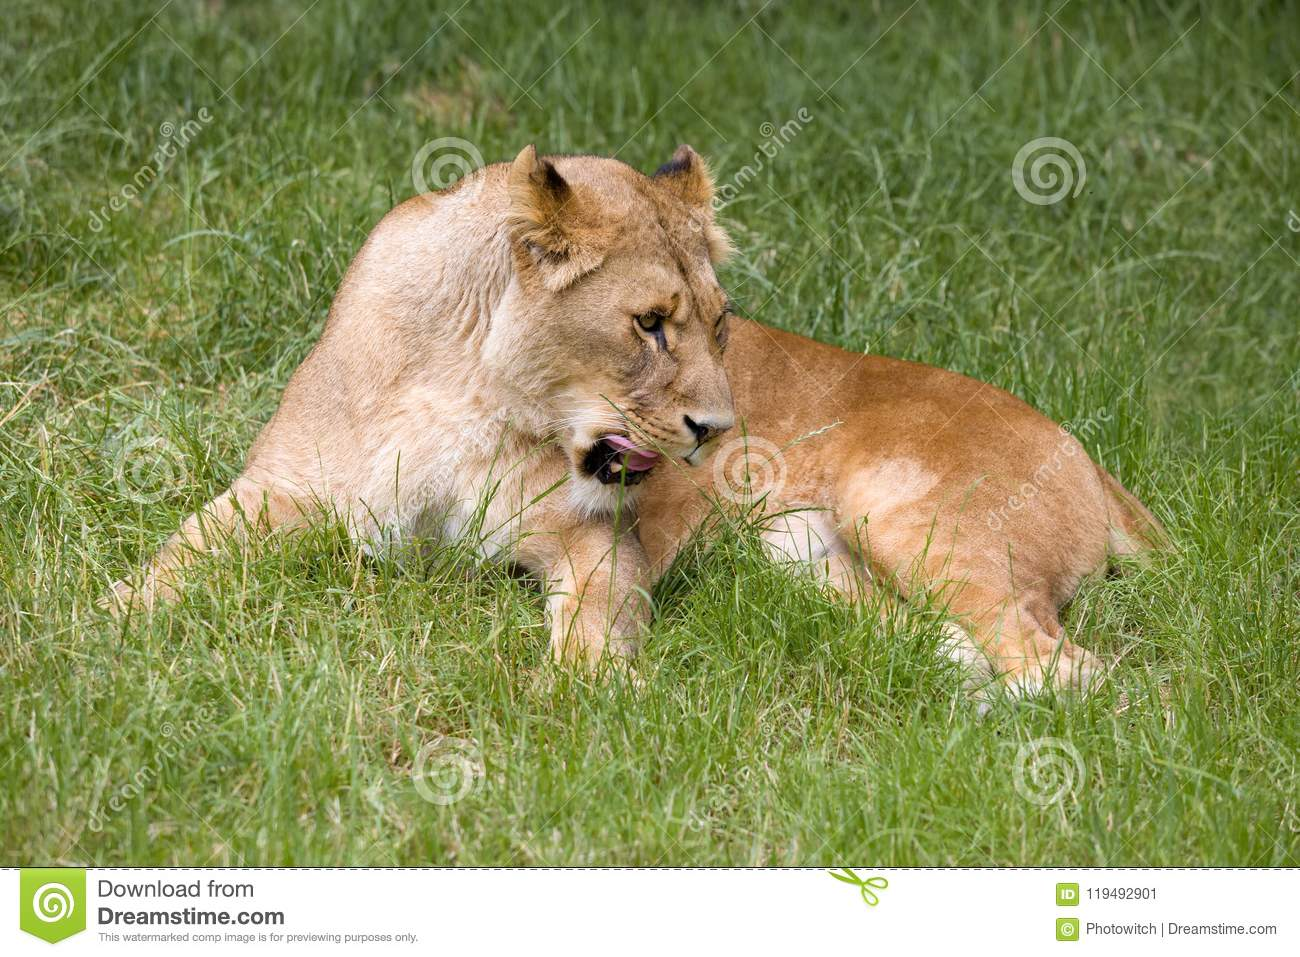 African lioness grooming